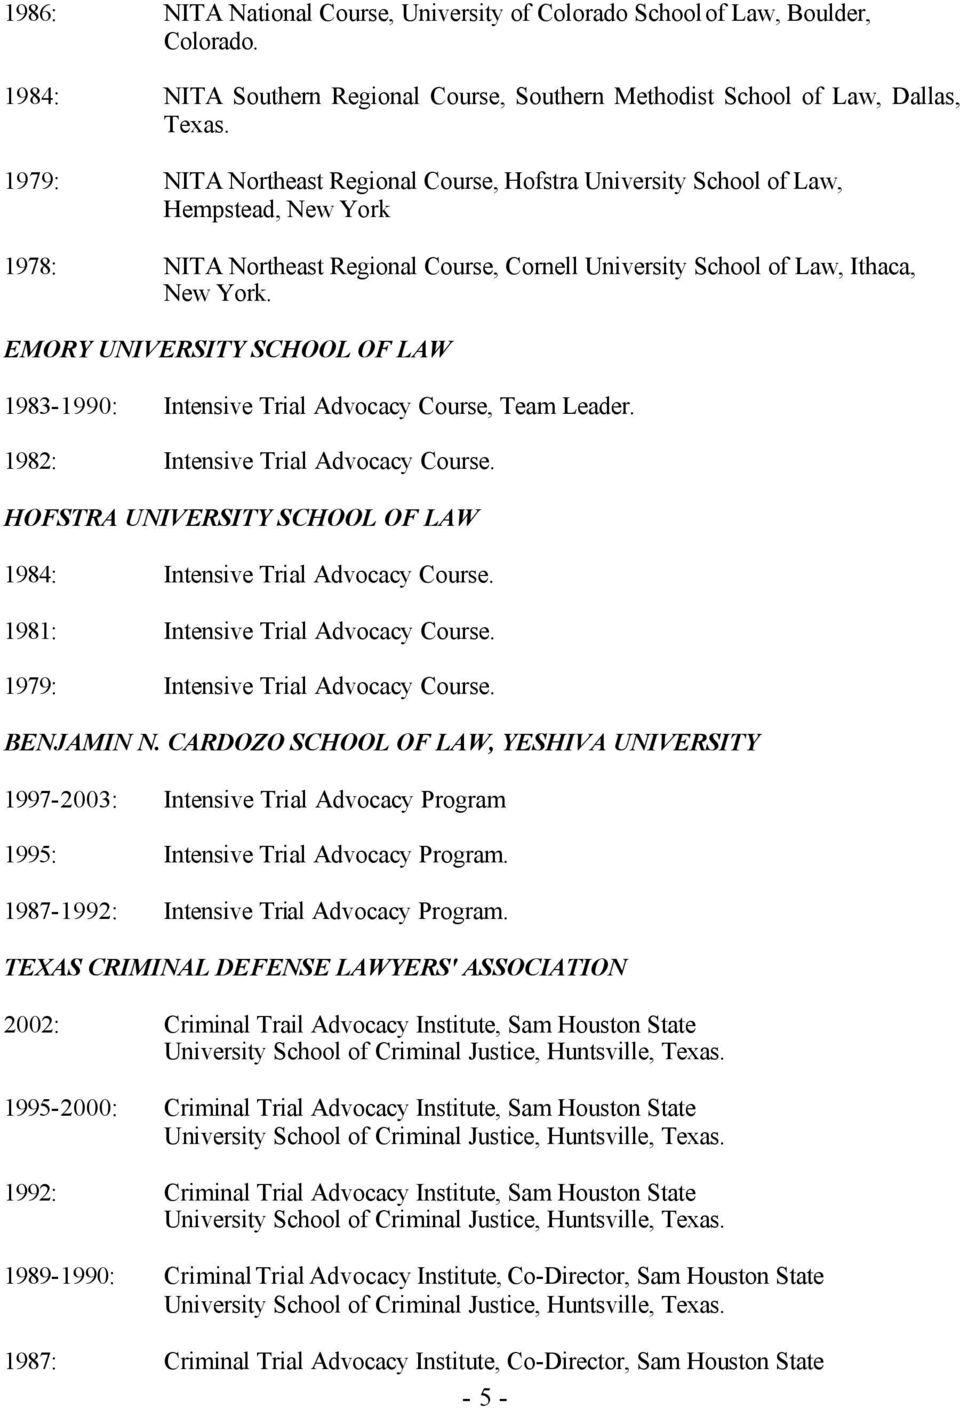 EMORY UNIVERSITY SCHOOL OF LAW 1983-1990: Intensive Trial Advocacy Course, Team Leader. 1982: Intensive Trial Advocacy Course. HOFSTRA UNIVERSITY SCHOOL OF LAW 1984: Intensive Trial Advocacy Course.